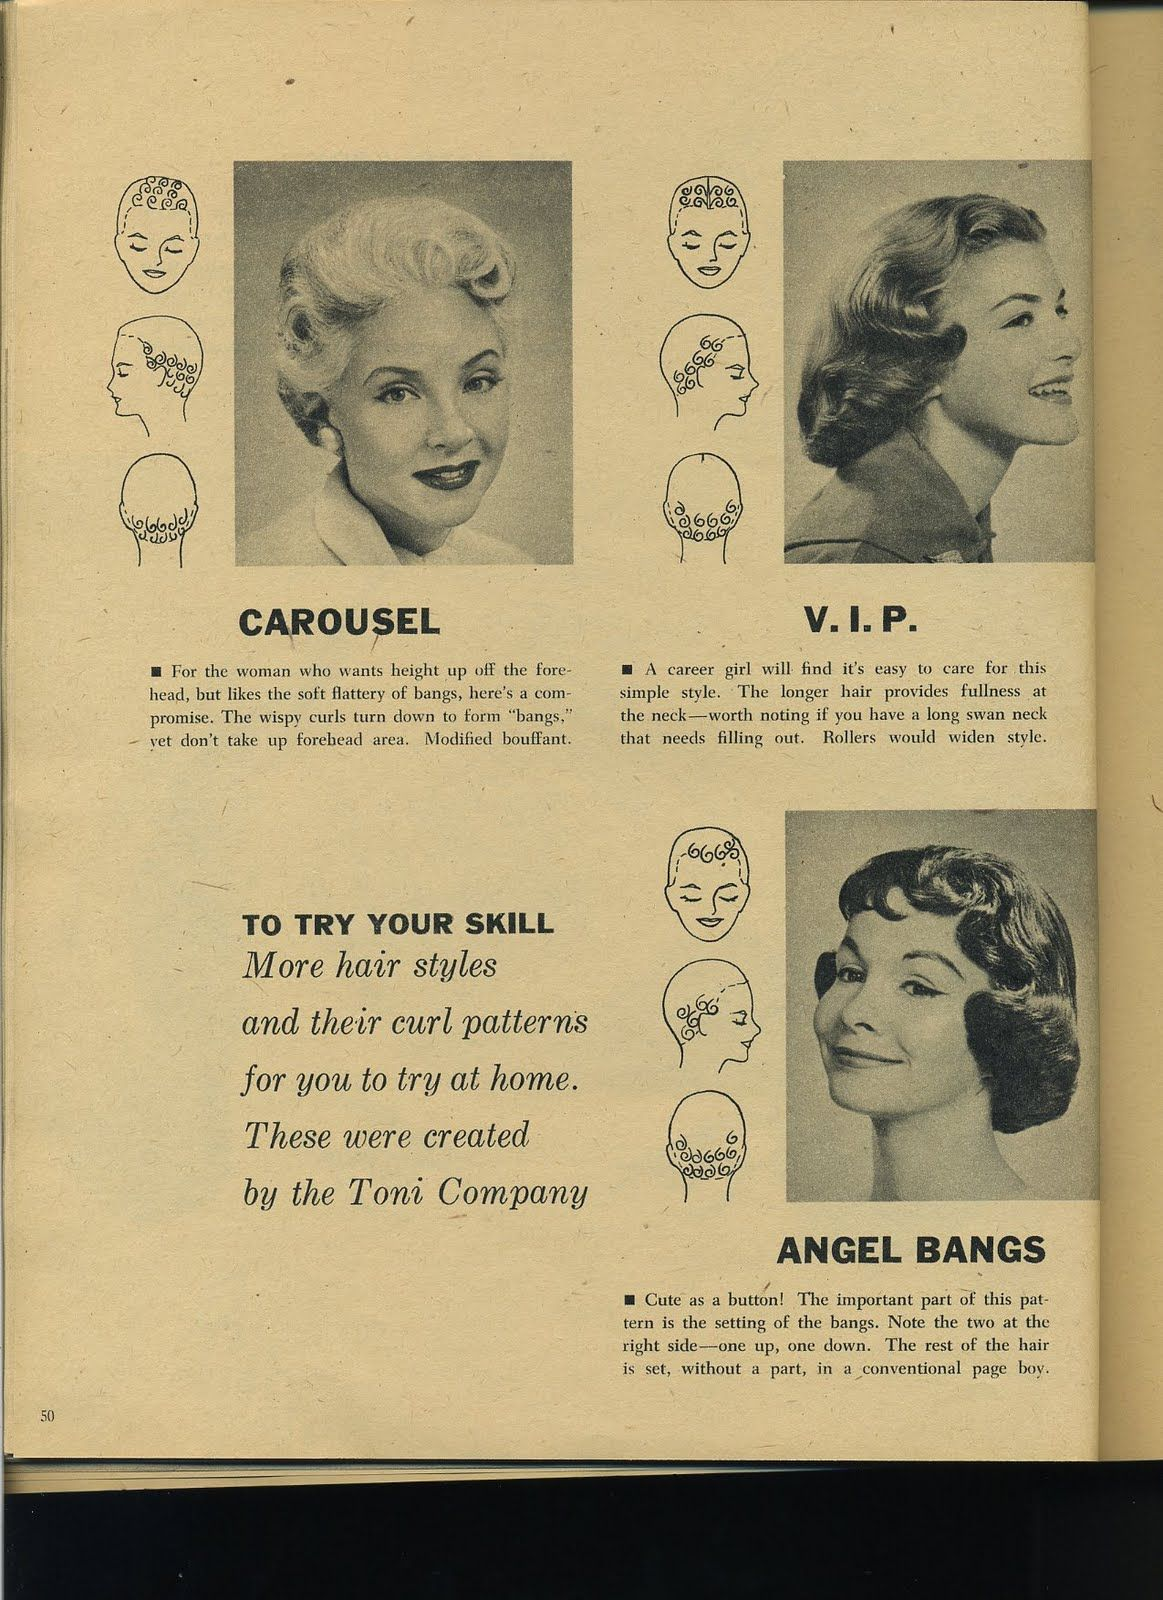 vintage pin curls diagram ford fiesta 2006 radio wiring this curl pattern for quotangel bangs quot is beyond adorable